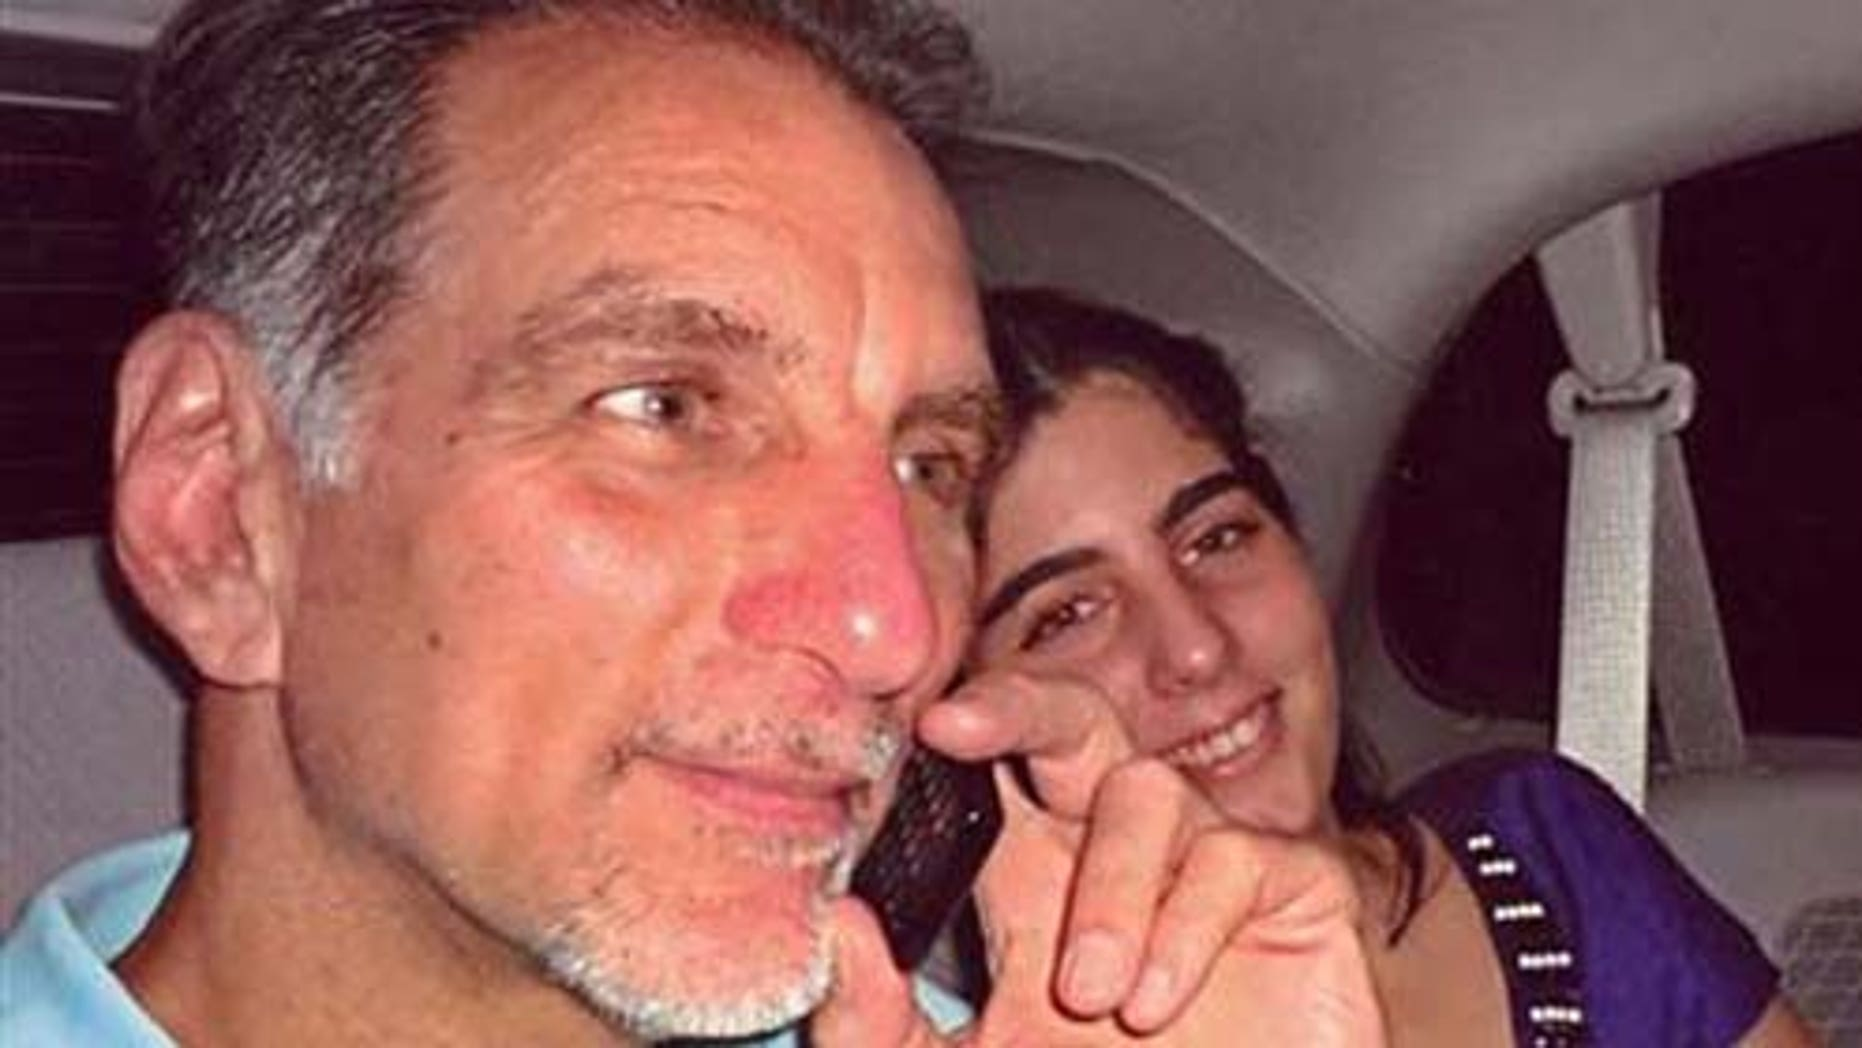 Oct. 12, 2011: In this photo released on Wednesday by the state media Cubadebate website, convicted Cuban agent René González talks on the phone accompanied by his youngest daughter Ivette, after he was freed from a Florida jail, after serving 13 years of a 15-year sentence, in Marianna, Fla.